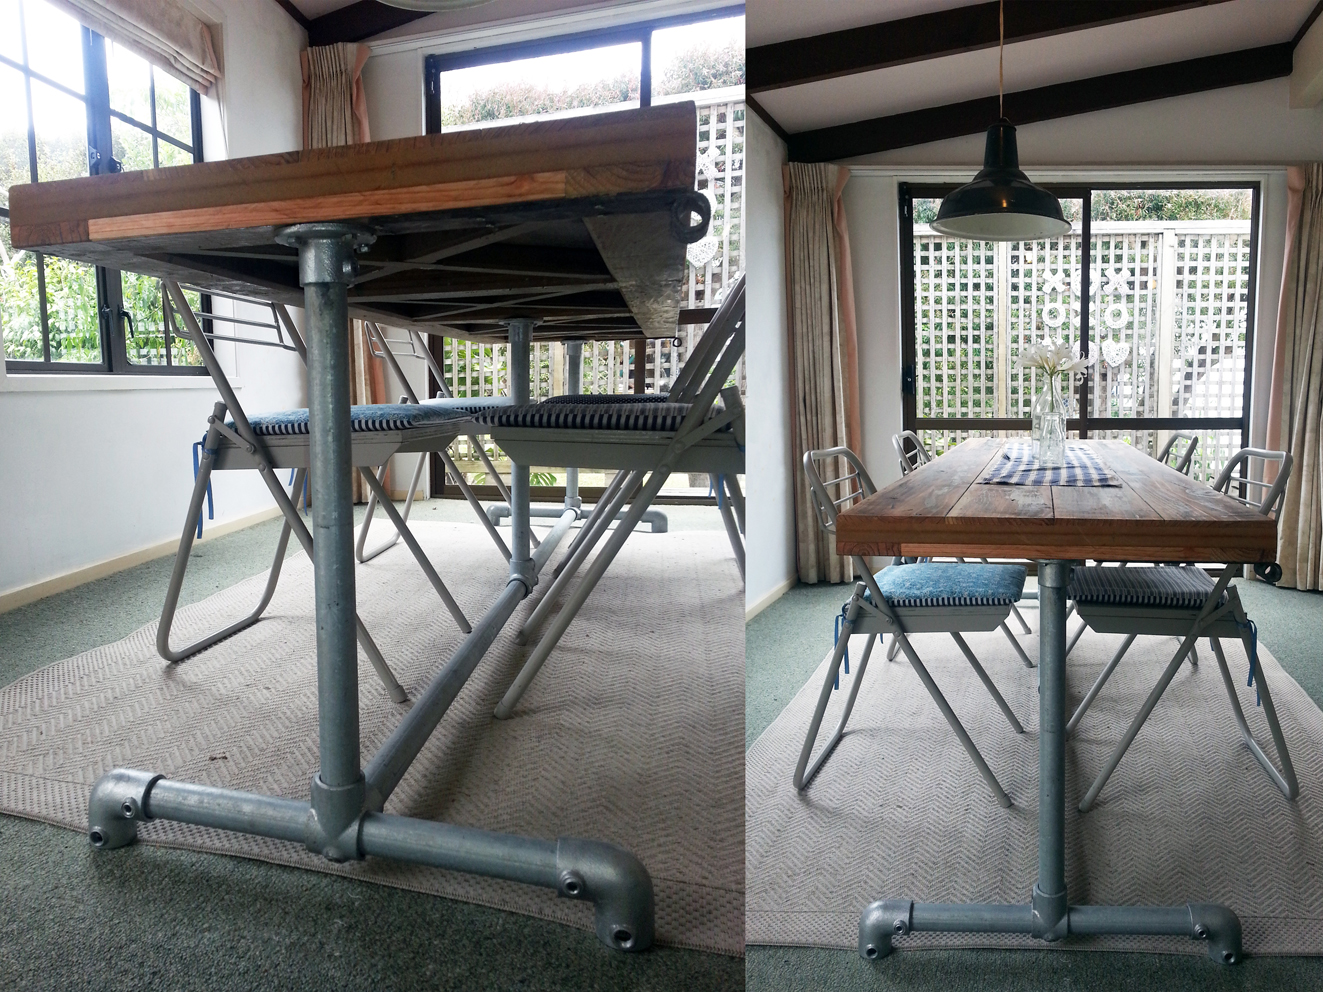 INDUSTRIAL DINING TABLE timber top amp pipe legs Felt : o from felt.co.nz size 1323 x 992 jpeg 1054kB